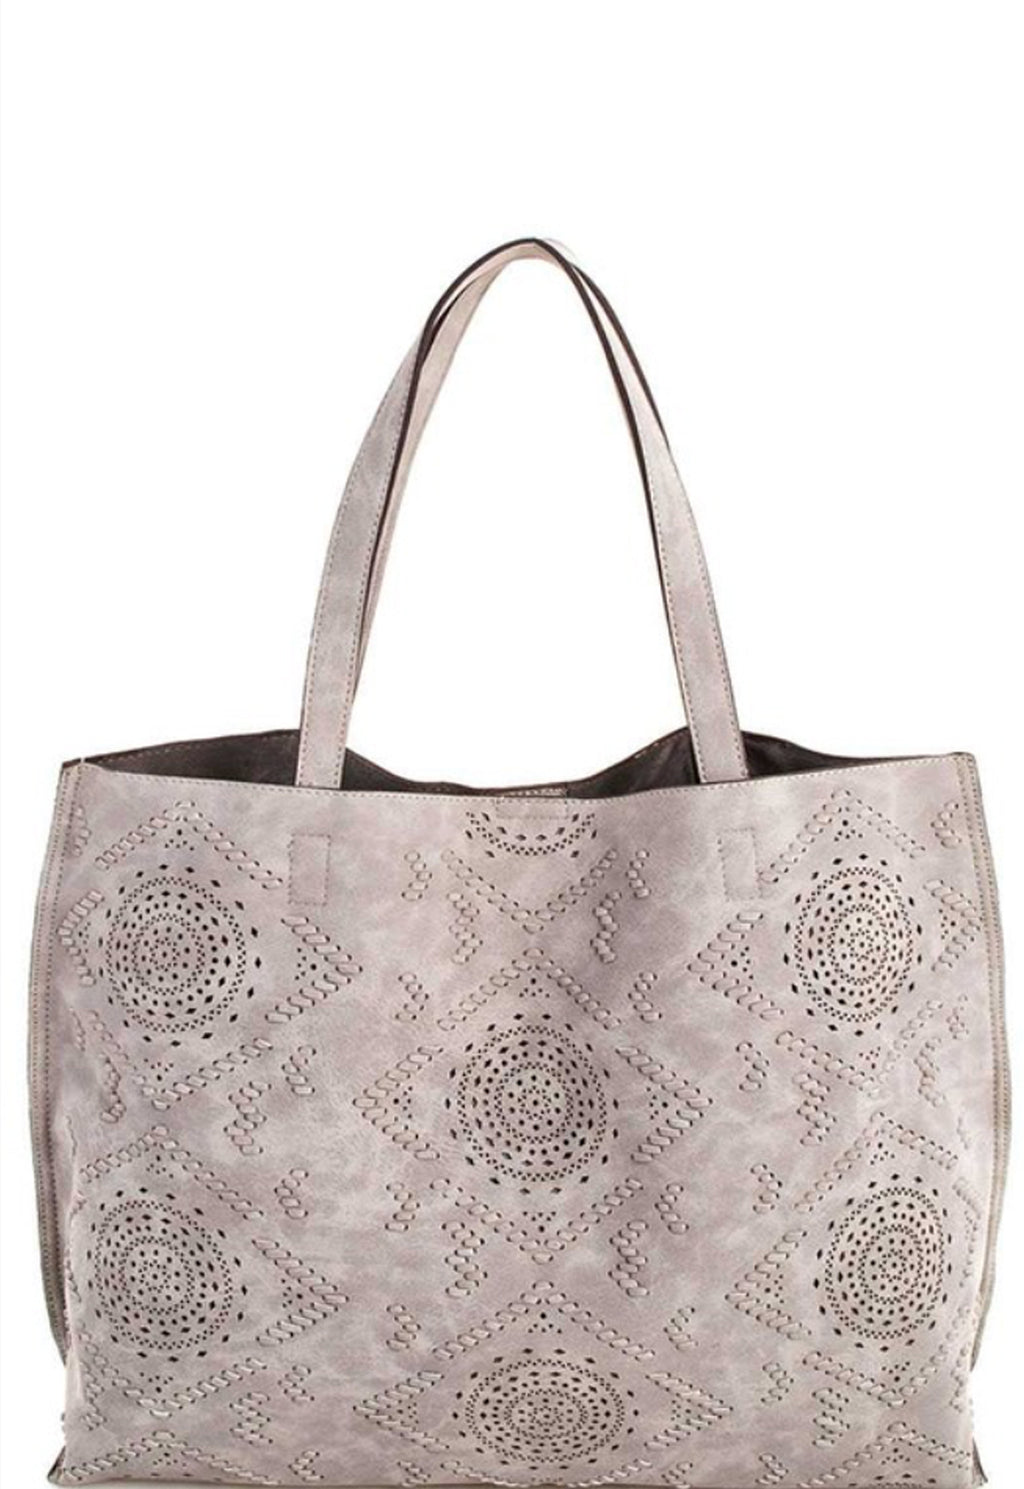 Ladies Vegan Leather Tote with etched design color light gray. By Street Level